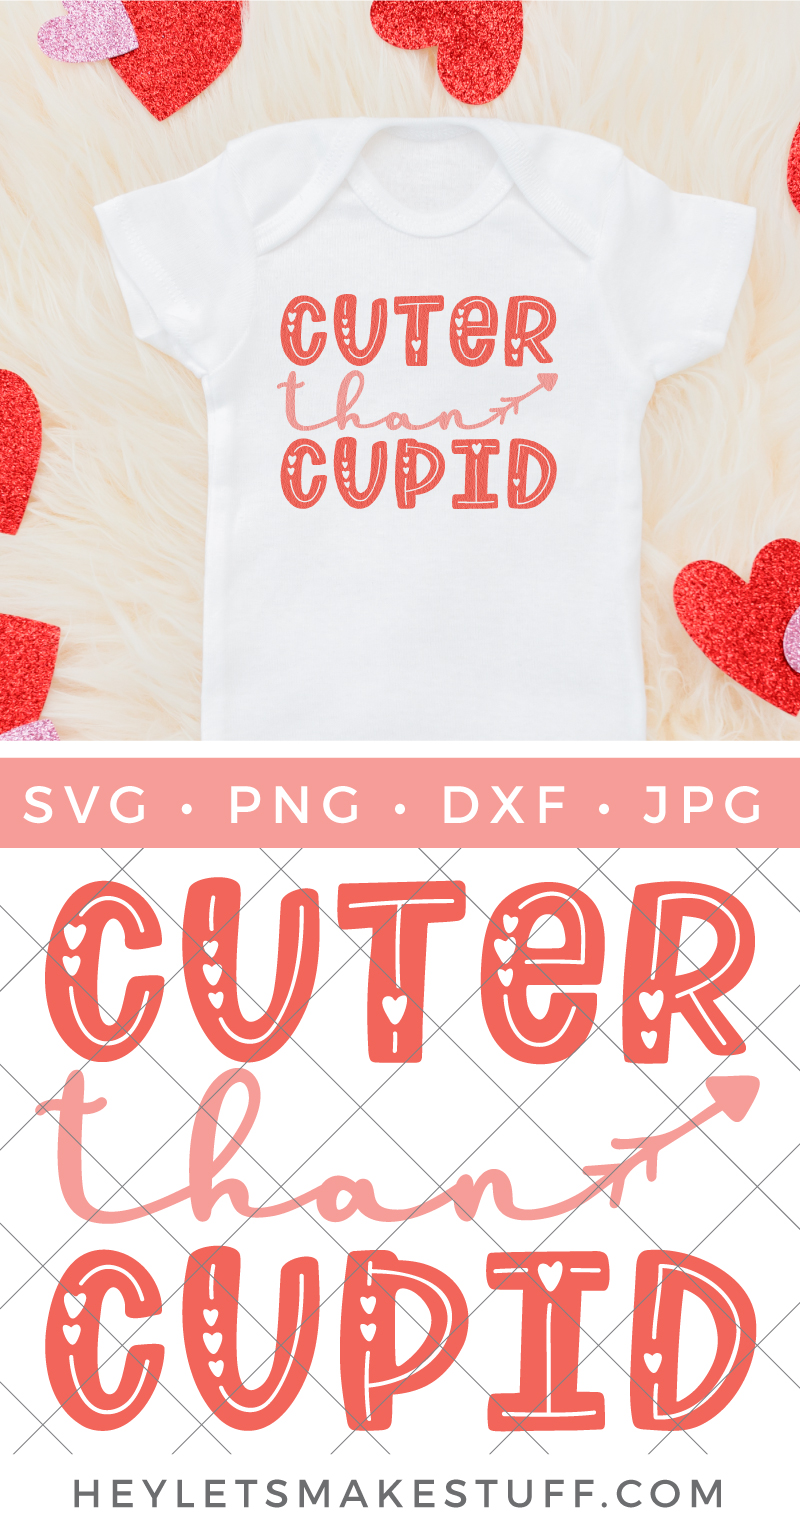 Make a Valentine's Day onesie or a bib for your little one! This free Cuter than Cupid SVG is perfect for all your Valentine's Day crafting for babies and toddlers.  via @heyletsmakestuf